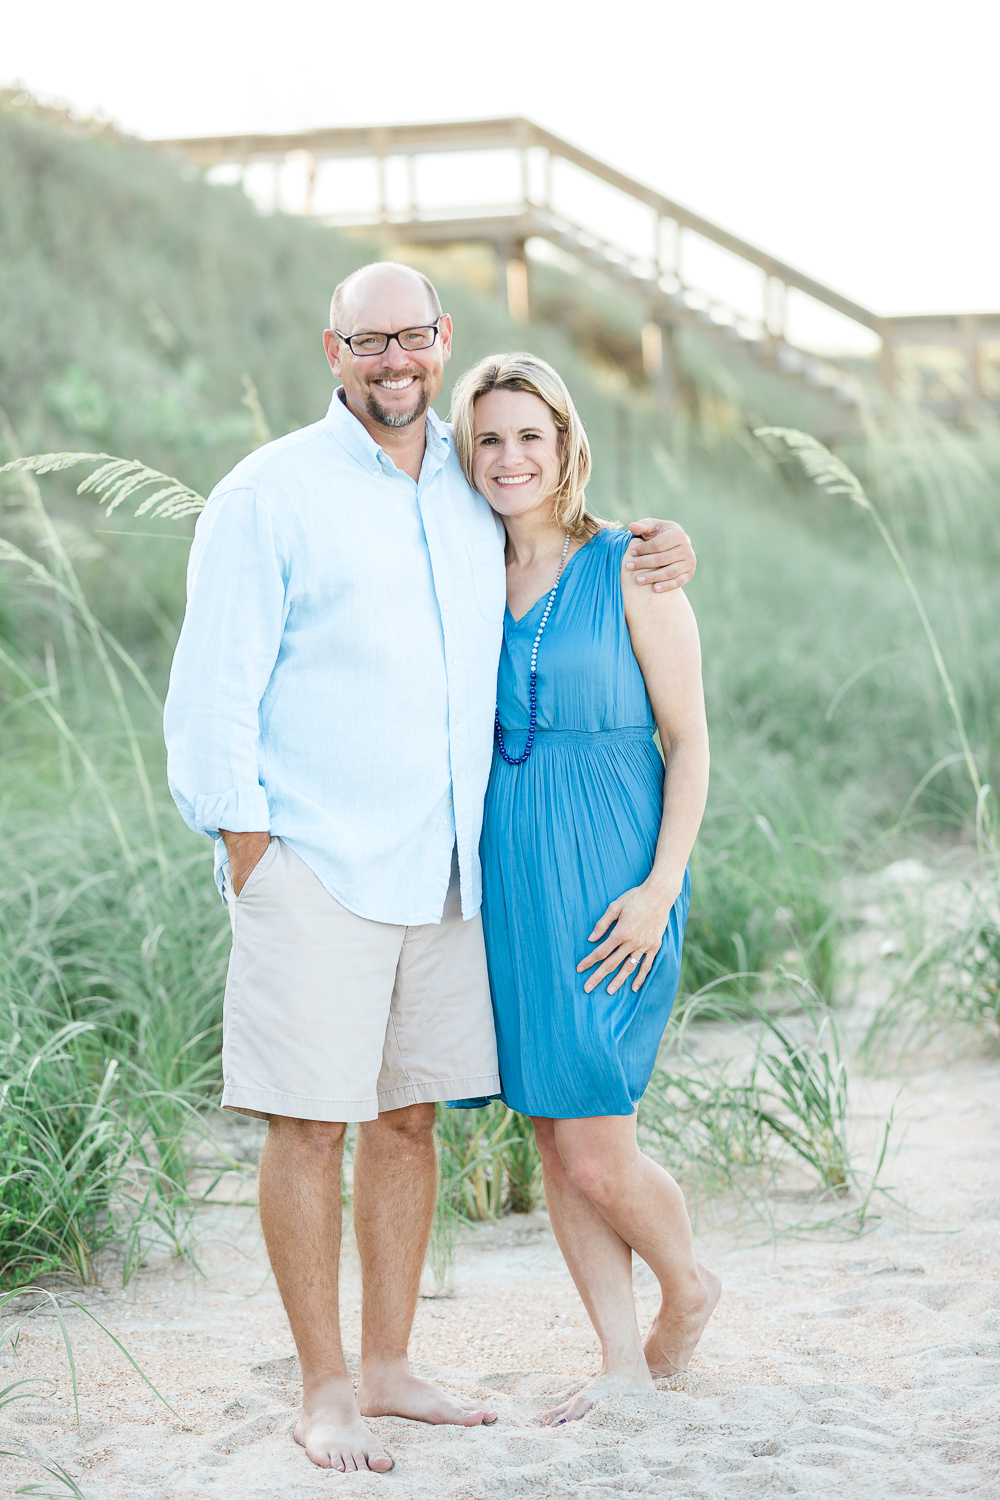 Engagement session in Ponte Vedra beach